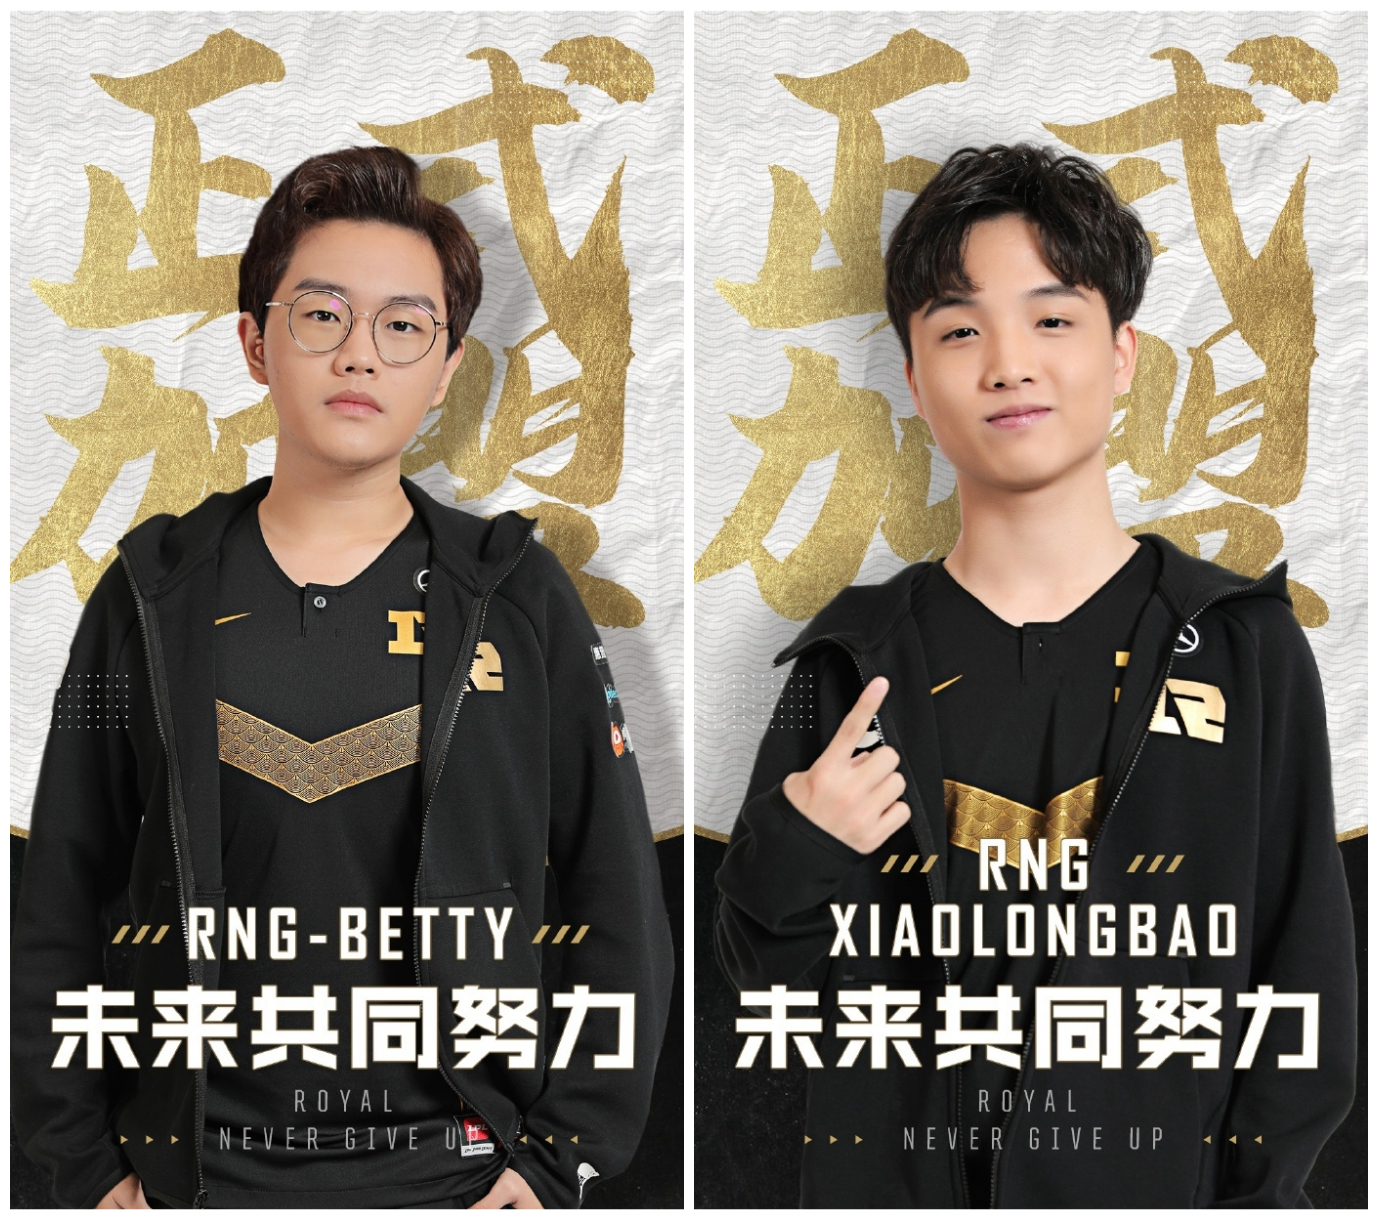 Betty、XiaoLongBao成為RNG新隊員。